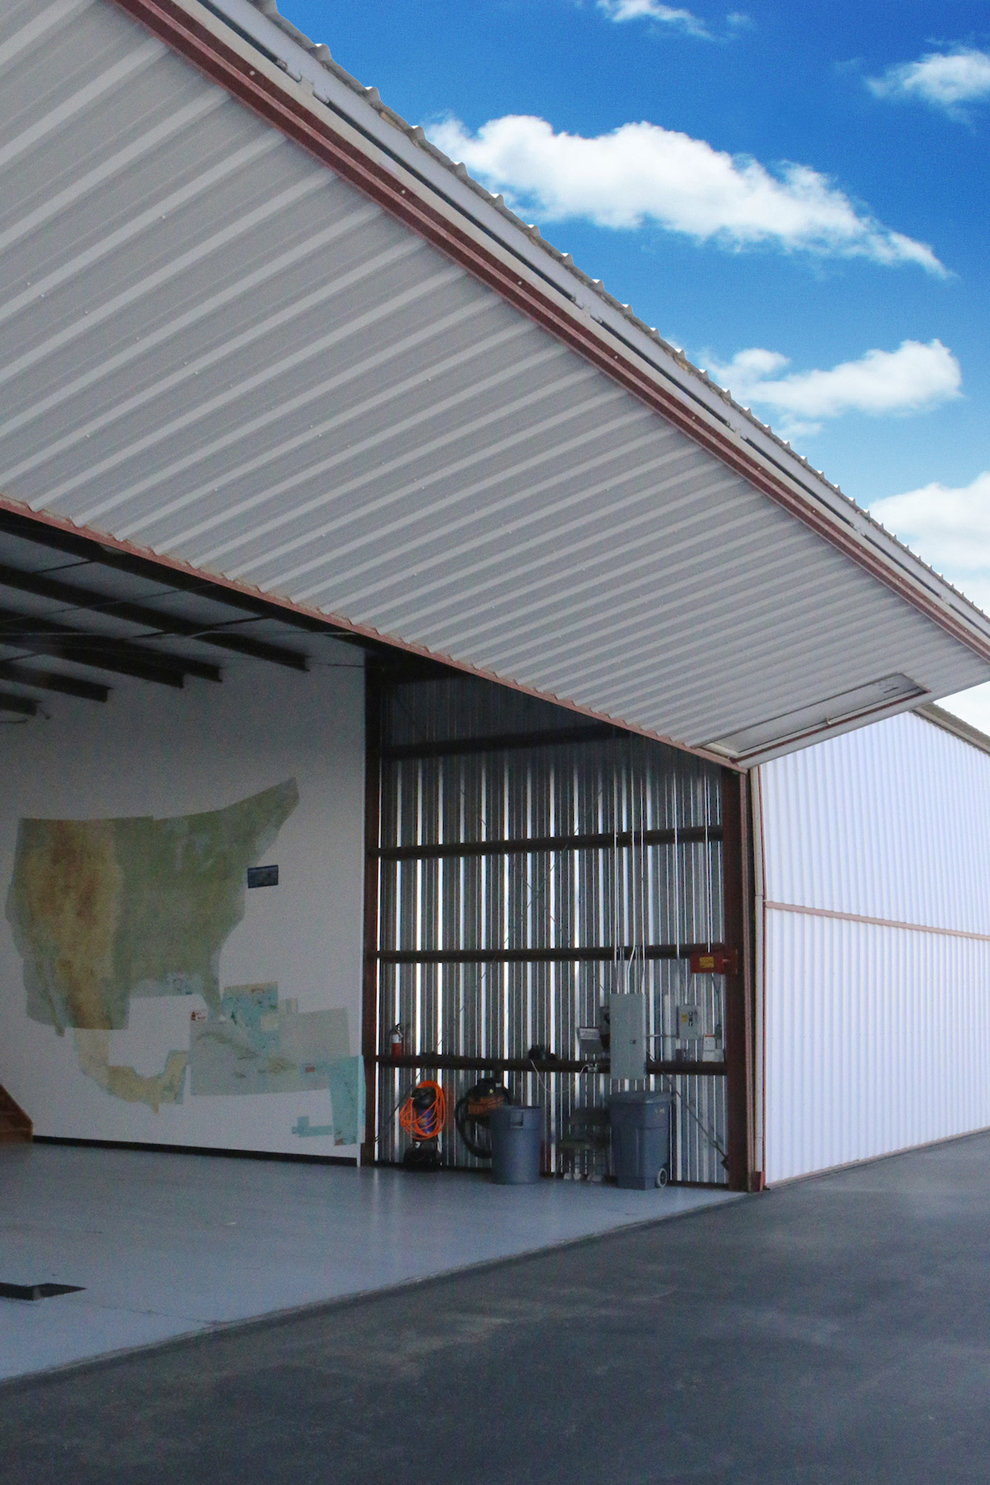 A large map is posted on the wall of this hangar for easy pilot and RV owner reference